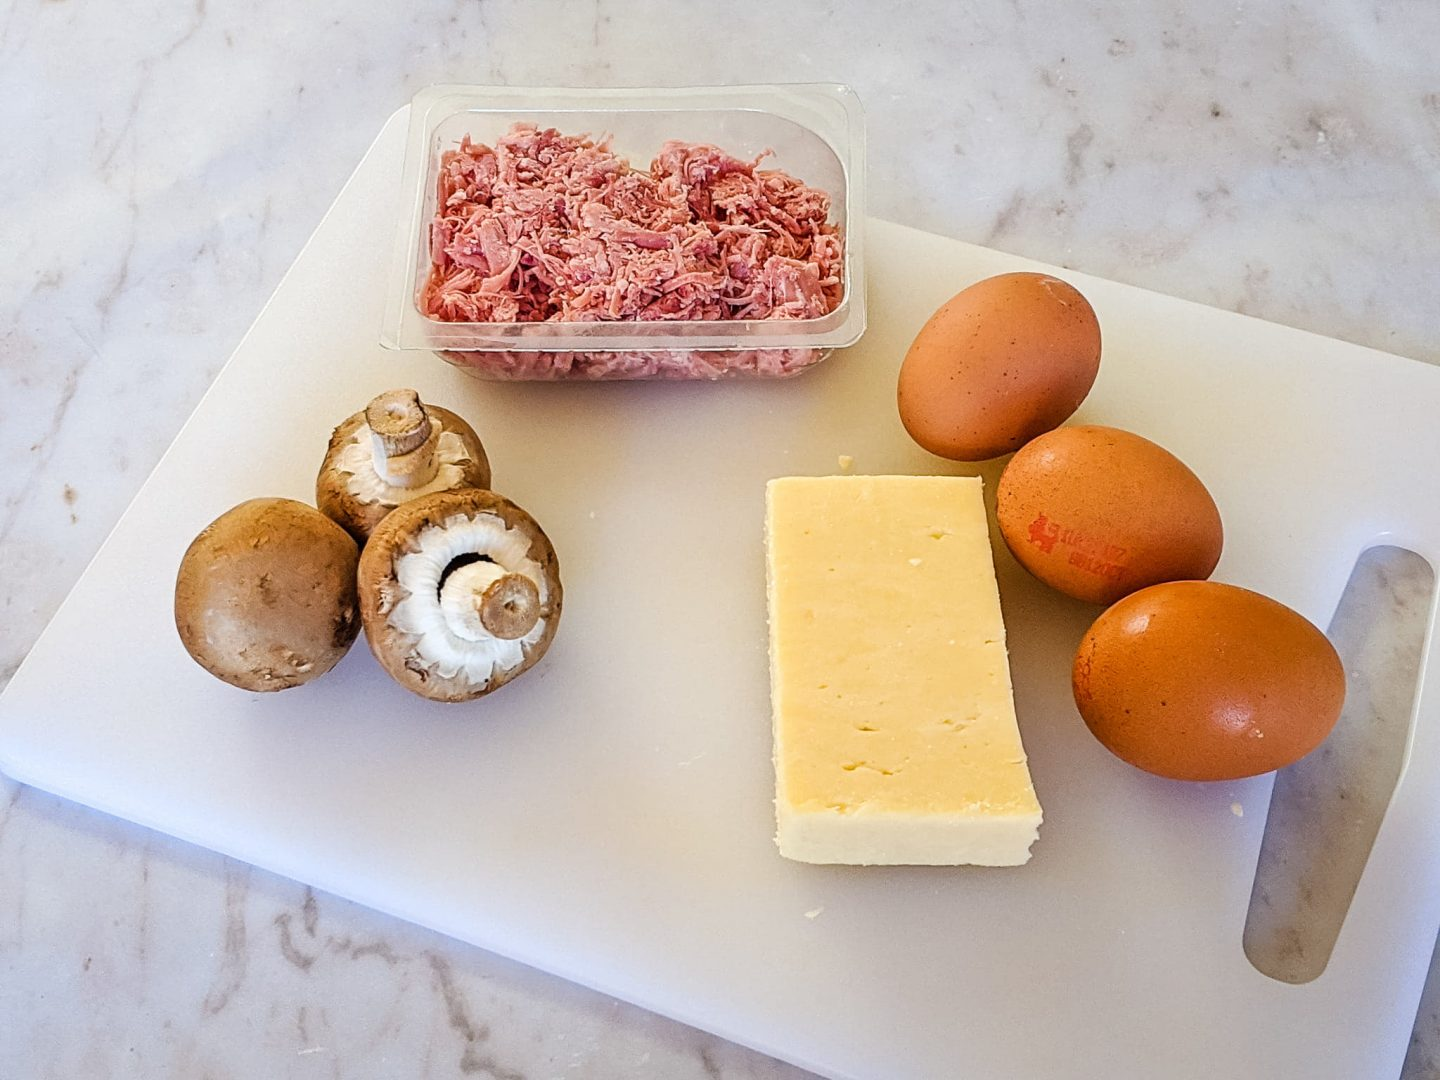 Omelette with cheese and ham ingredients